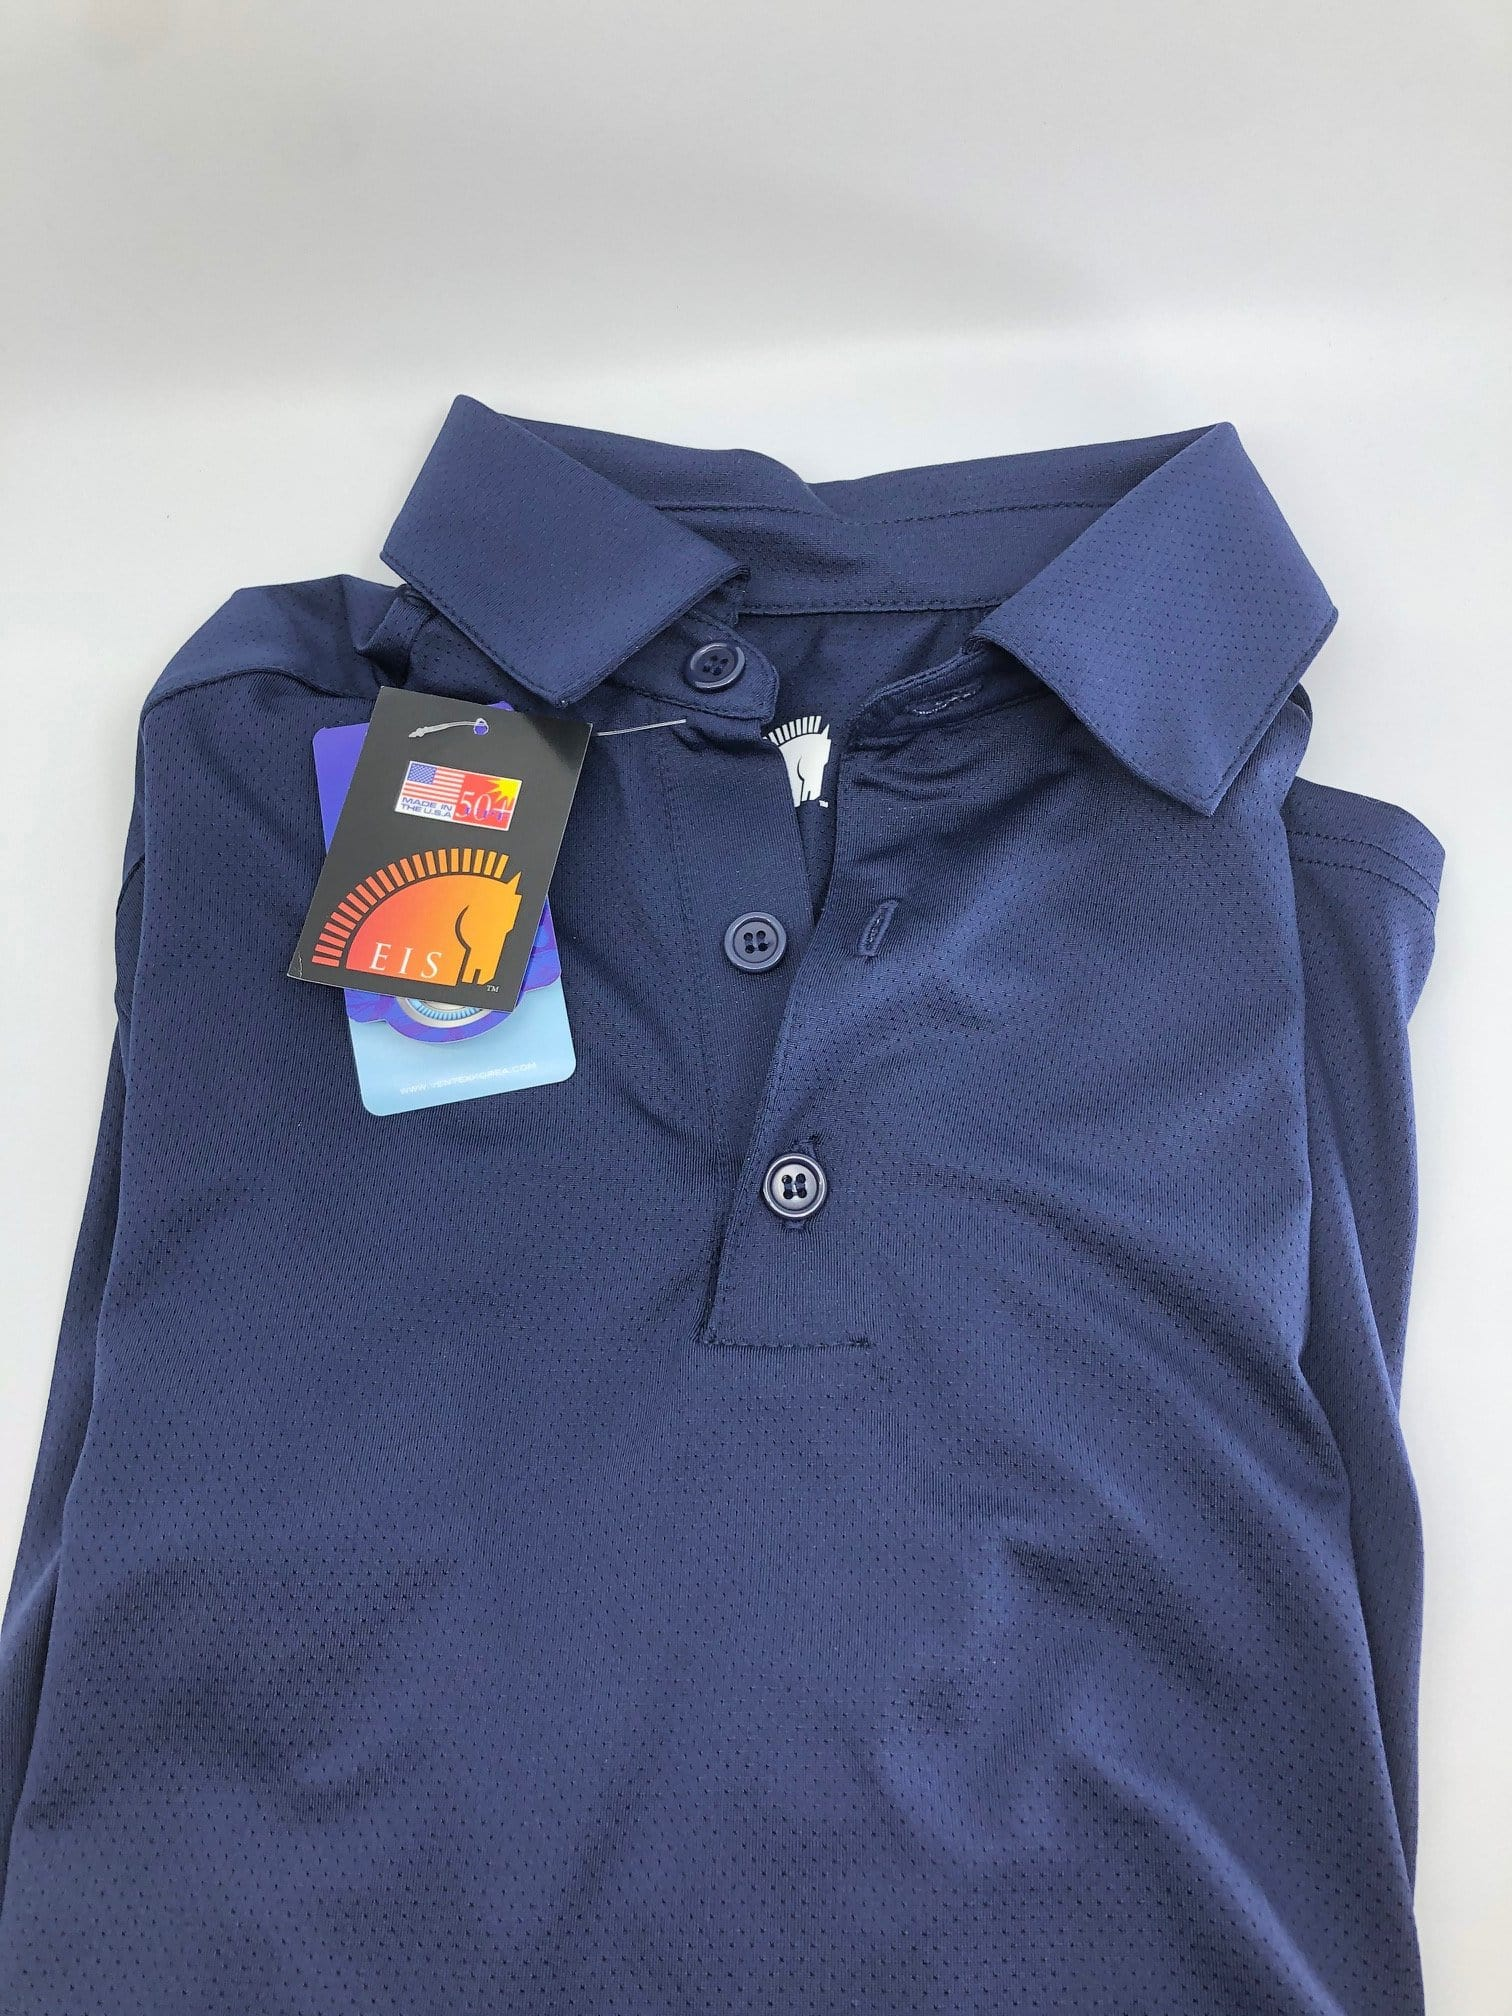 EIS Men's Shirts M/XS Men's Navy EIS Long Sleeve equestrian team apparel online tack store mobile tack store custom farm apparel custom show stable clothing equestrian lifestyle horse show clothing riding clothes horses equestrian tack store